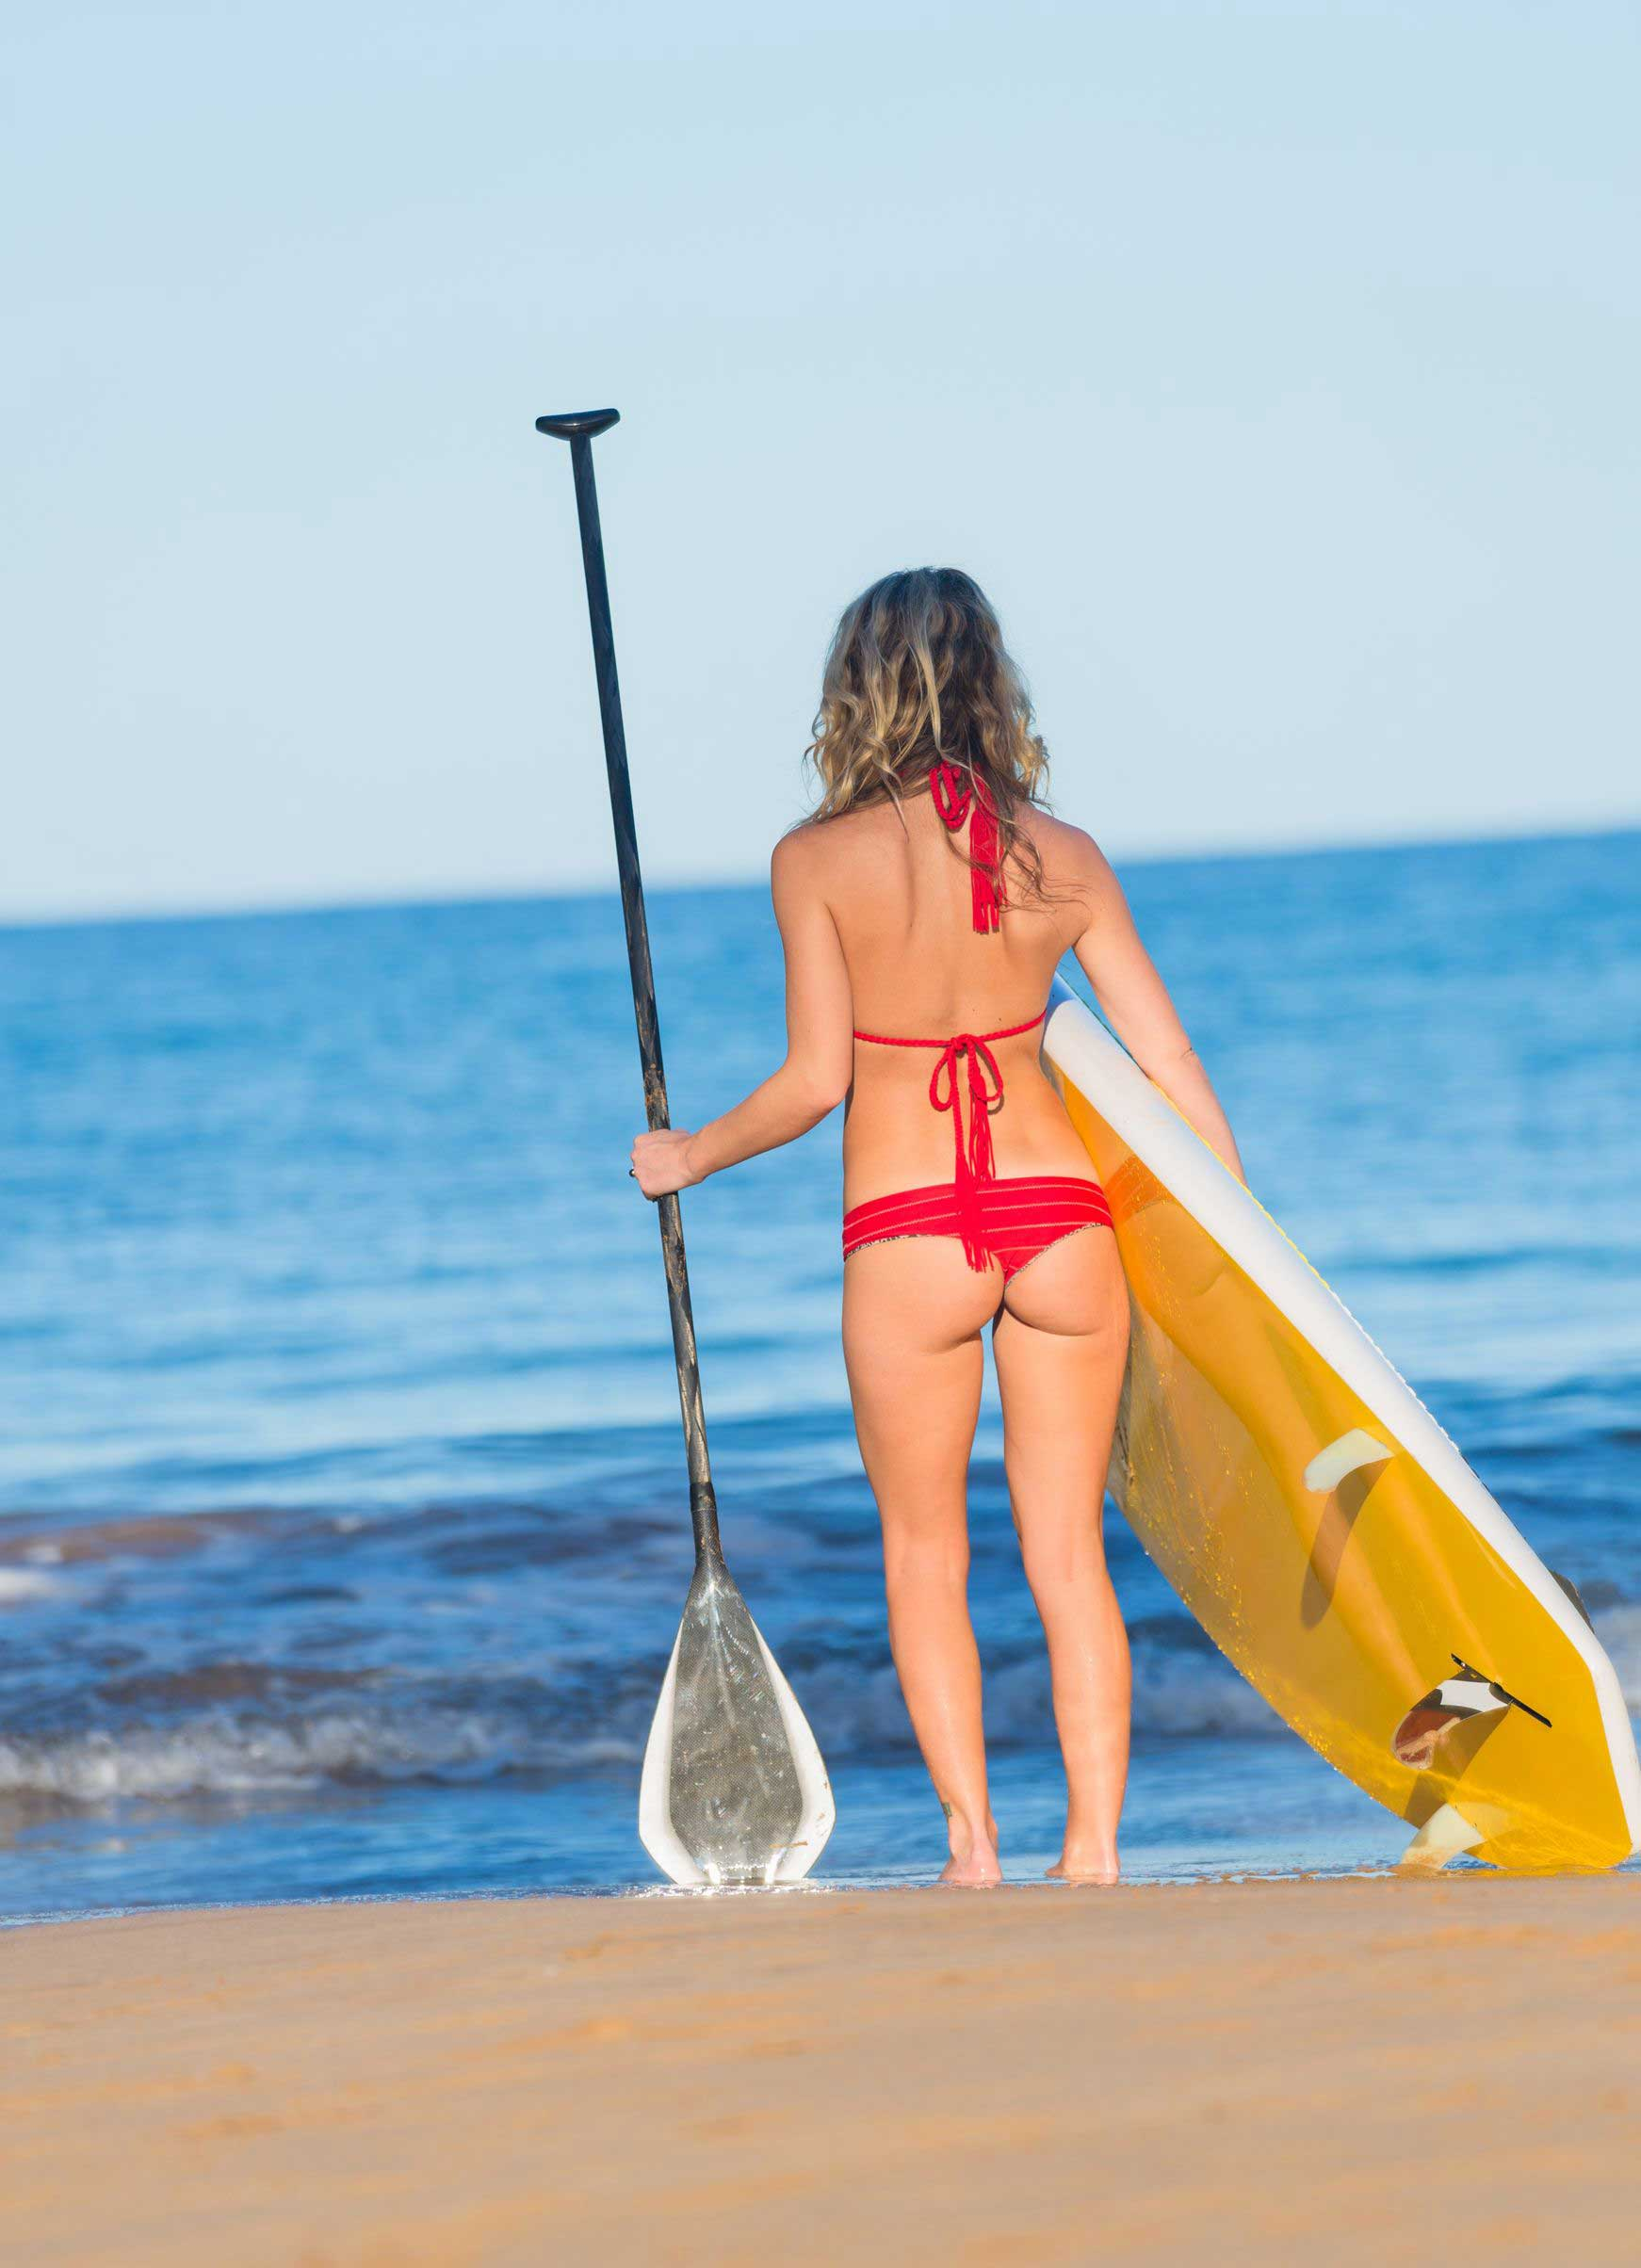 Frau-on-Stand-Up-Paddle